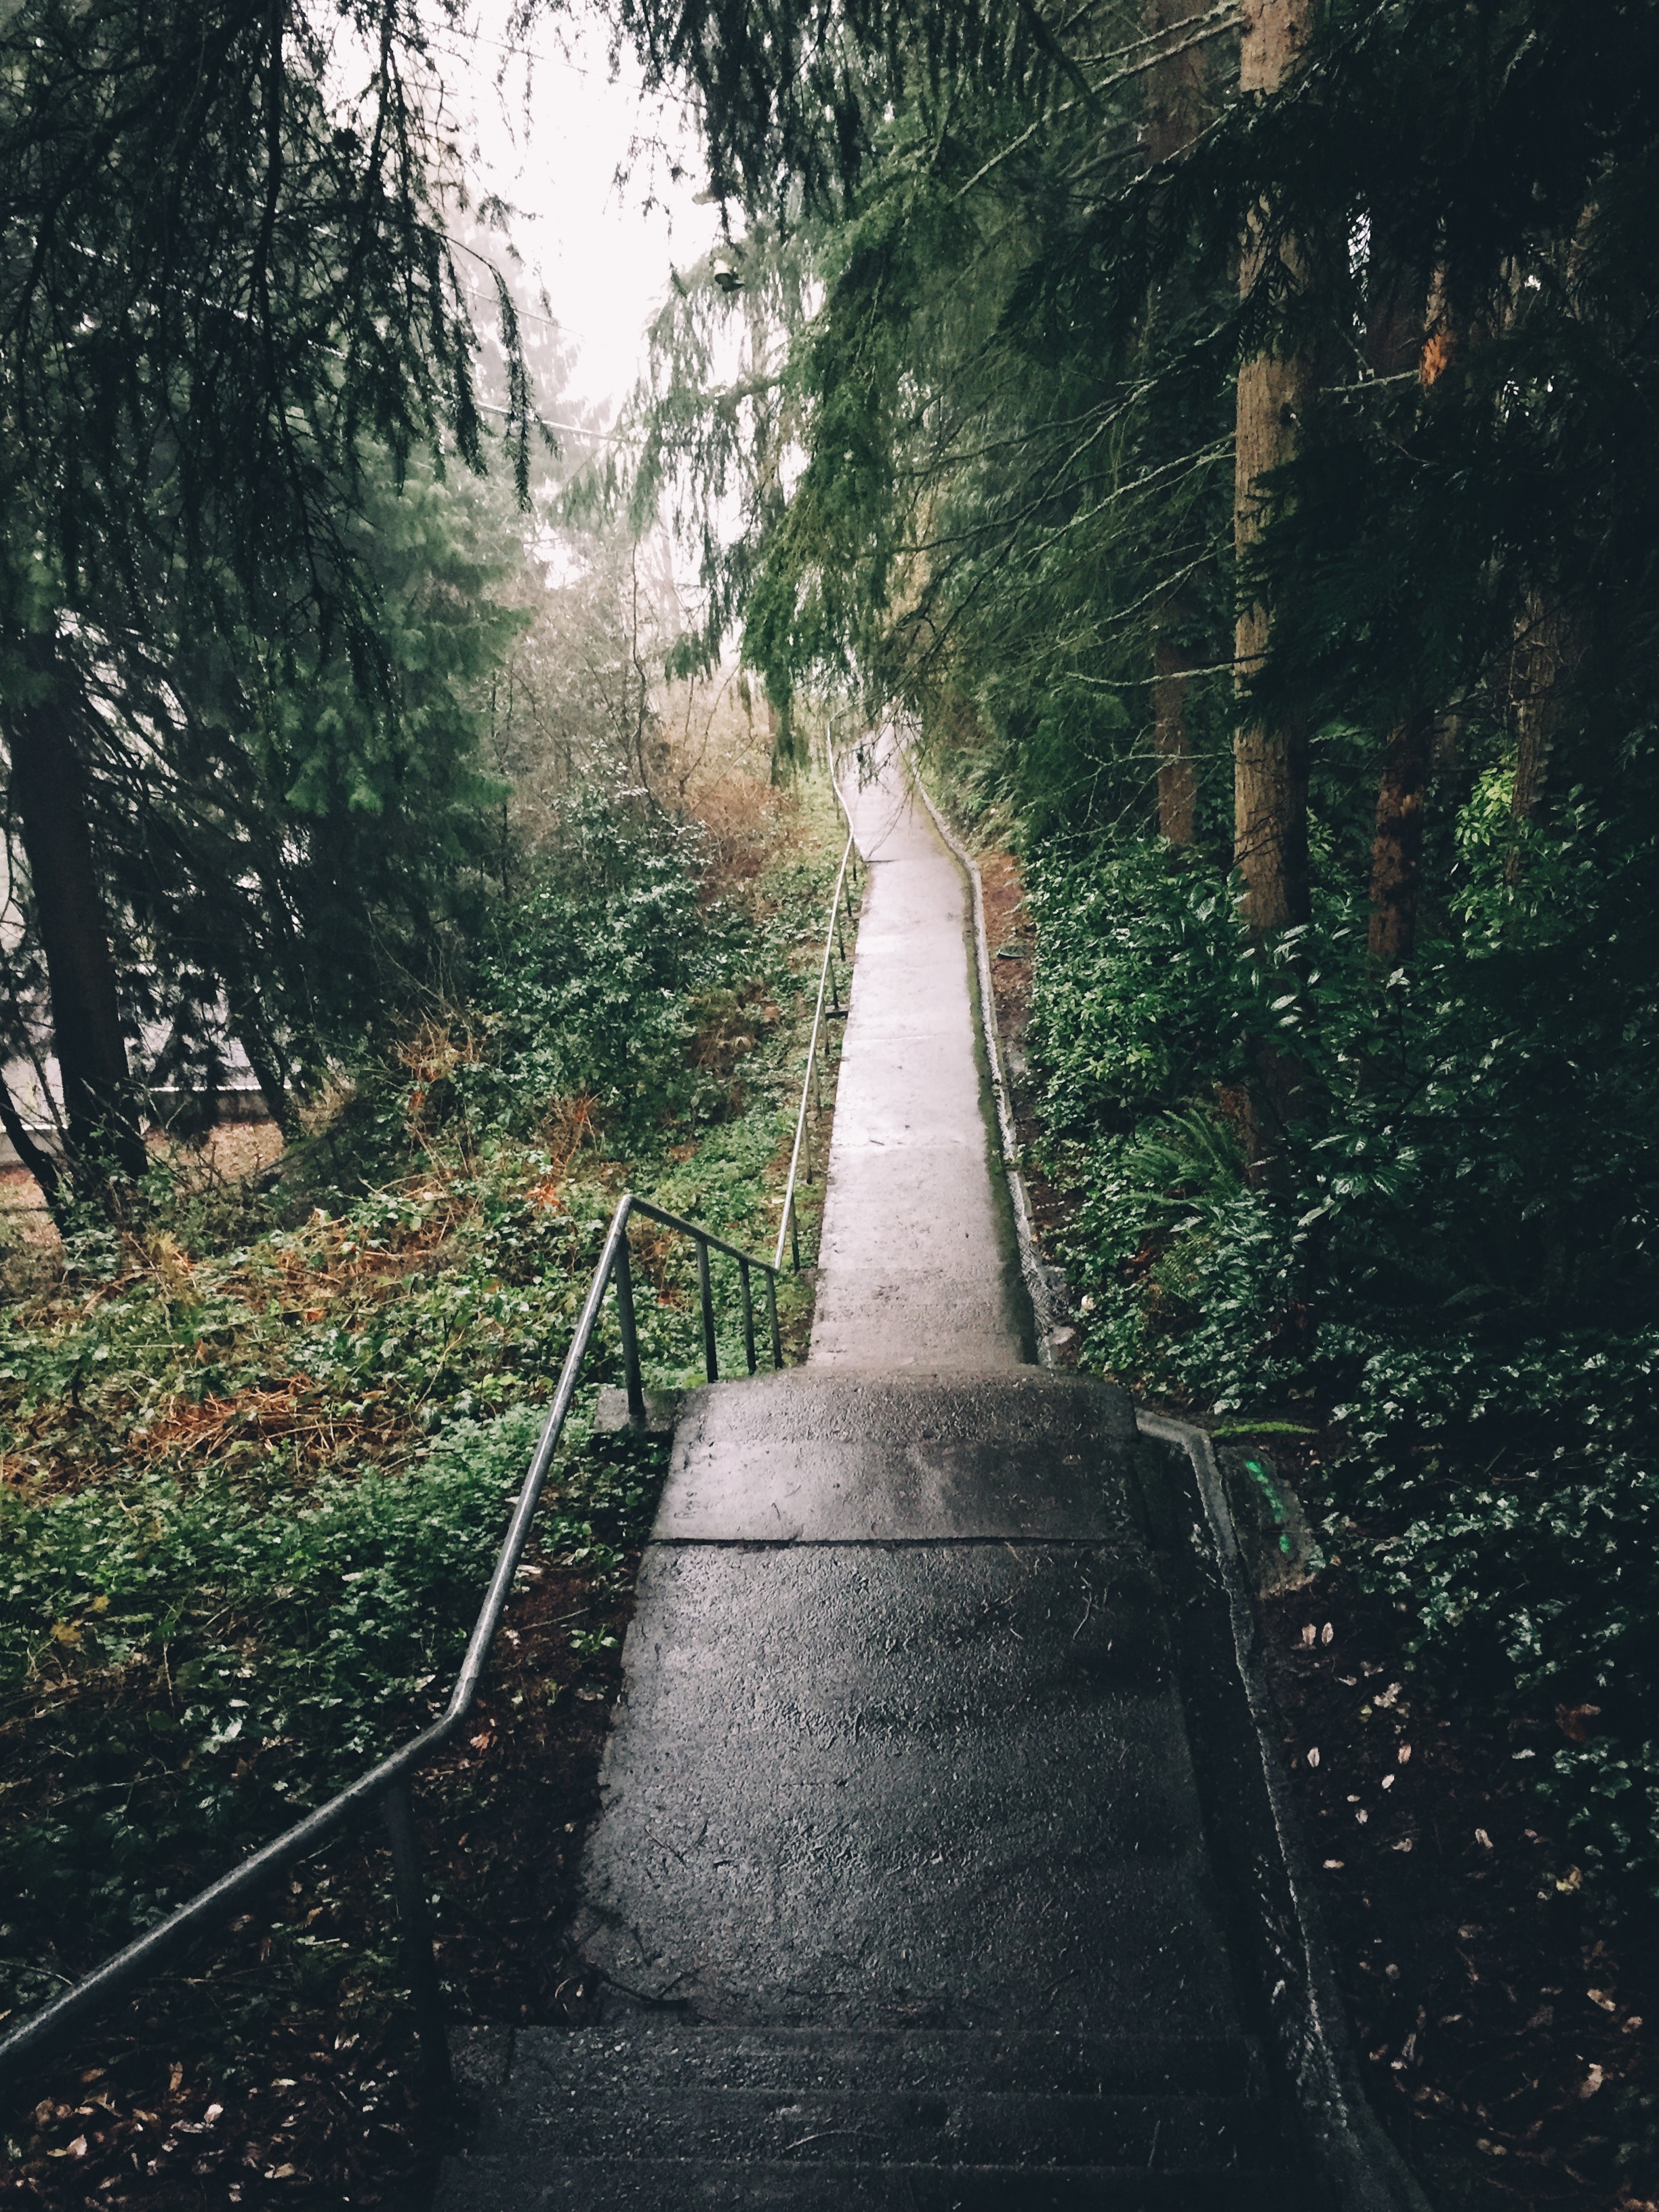 Found new stairs that I liked!